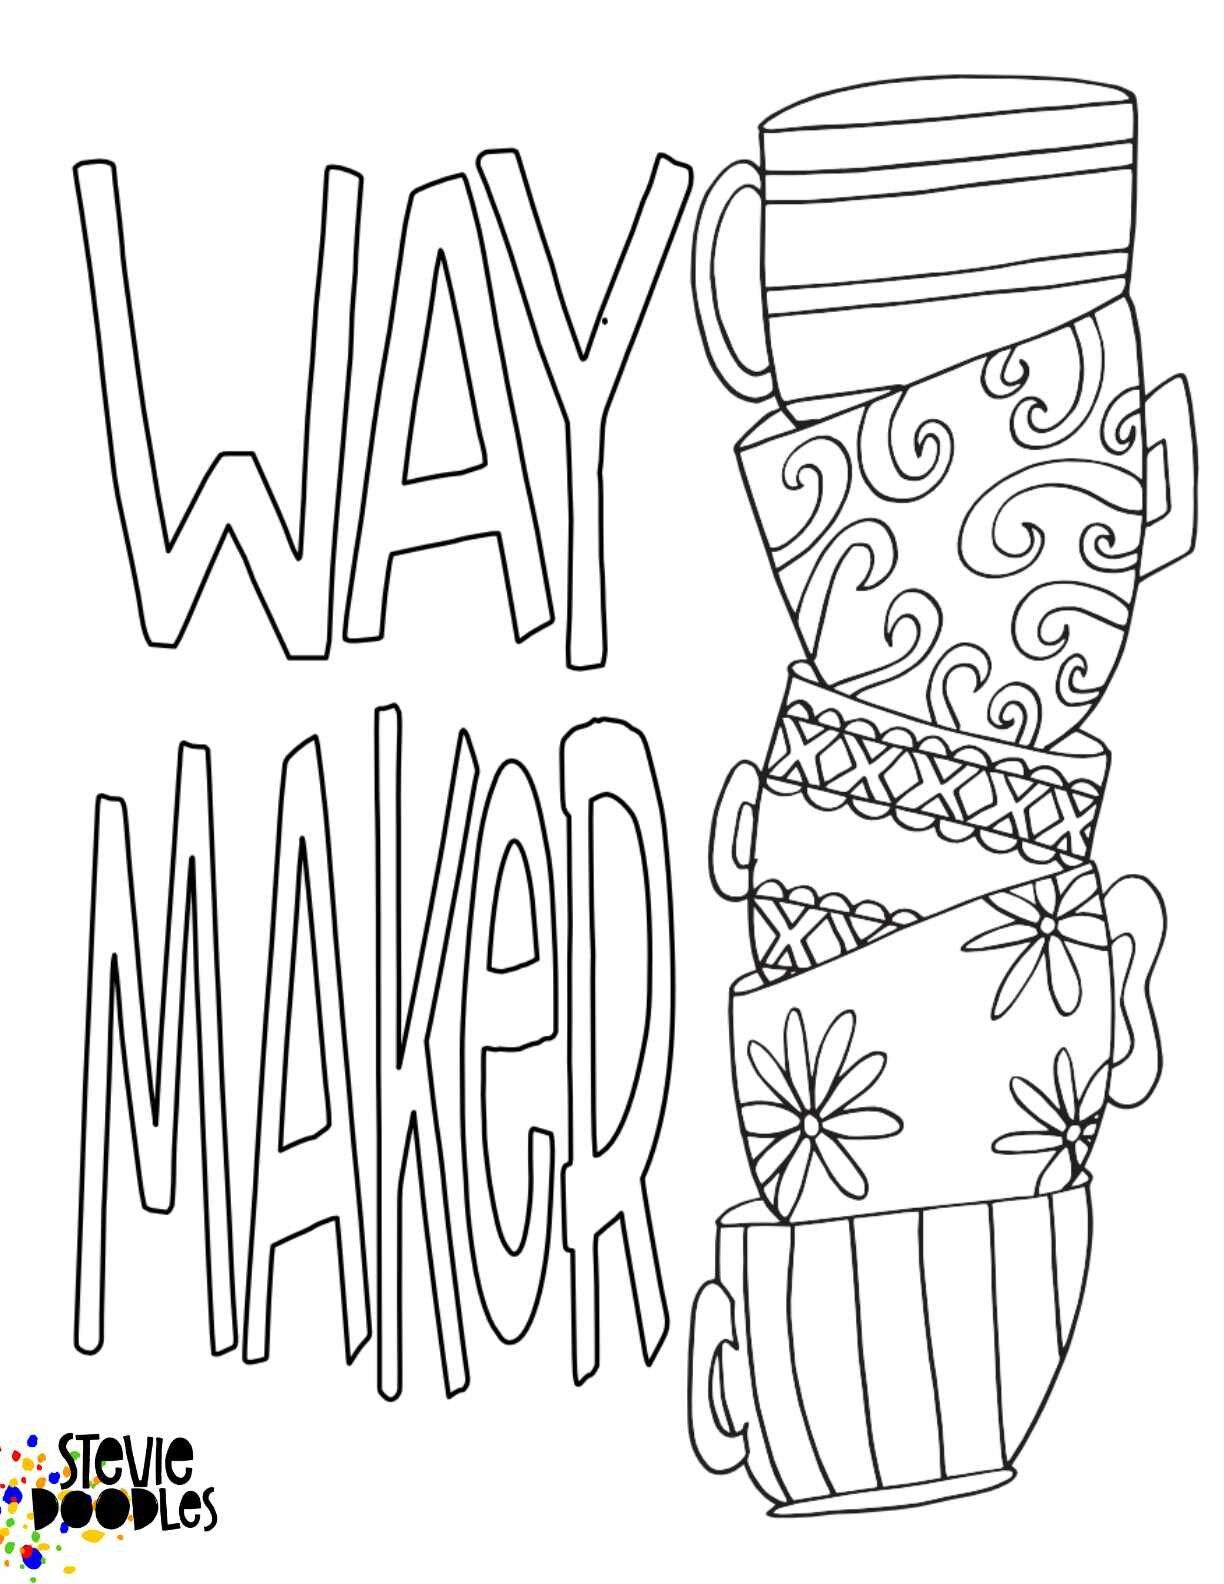 Coloring Page Maker Printables Http Www Wallpaperartdesignhd Us Coloring Page Maker Printables 46857 Coloring Pages Maker Fun Factory Vbs Coloring Books